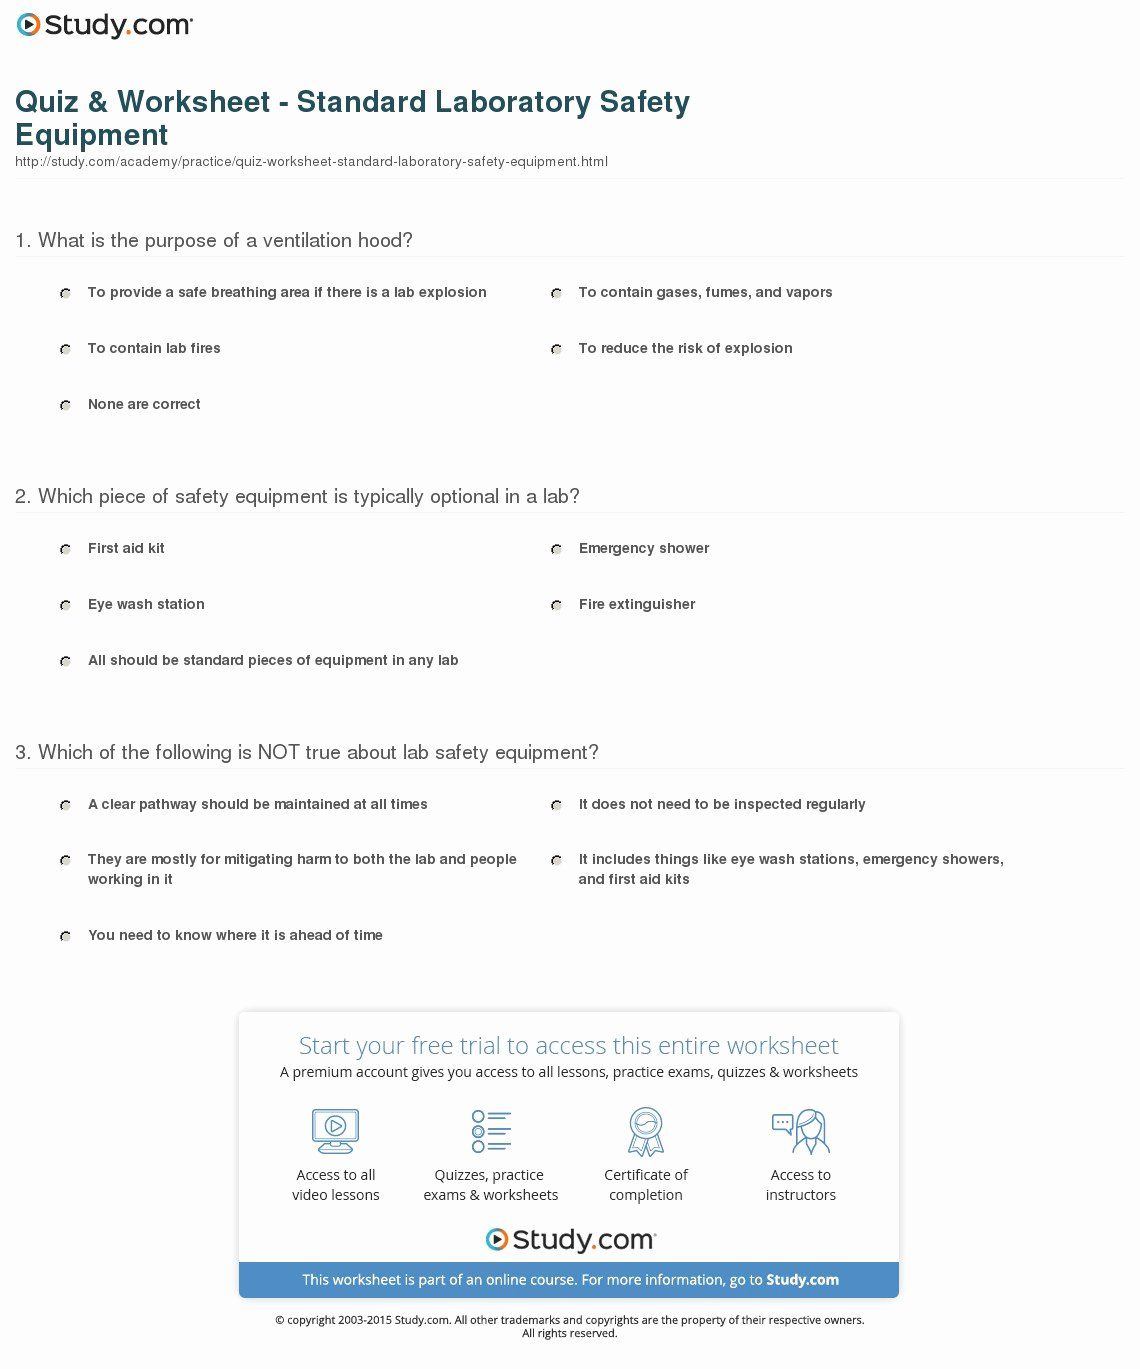 Lab Safety Worksheet Pdf Inspirational Quiz & Worksheet Standard Laboratory Safety Equipment